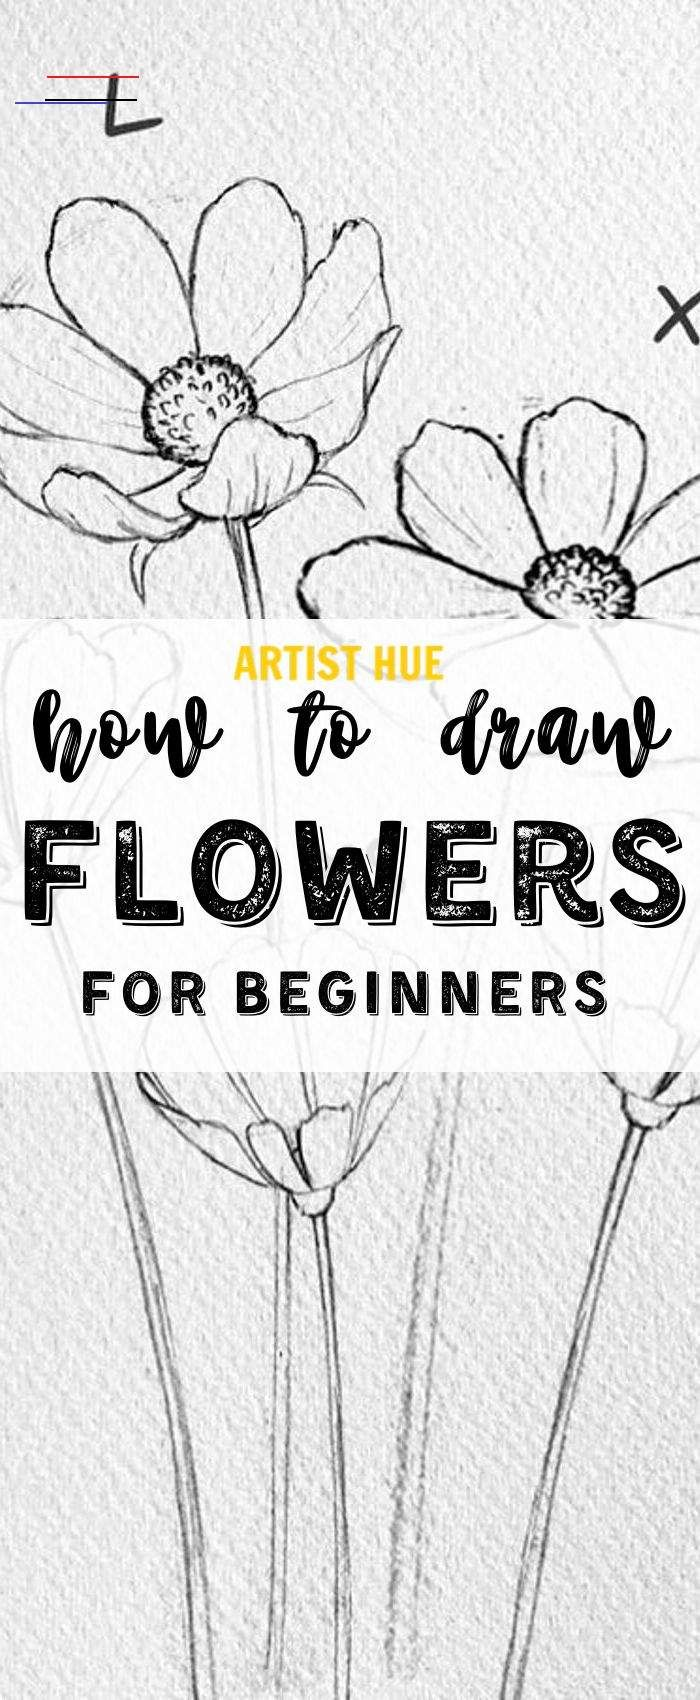 How to draw flowers step by step for beginners How to draw flowers step by step for beginners  <br> How to draw flowers step by step for beginners | how to draw flowers watercolor pencil | how to draw flowers realistic easy sketches #howtodraw #howtodrawflowers #artisthue